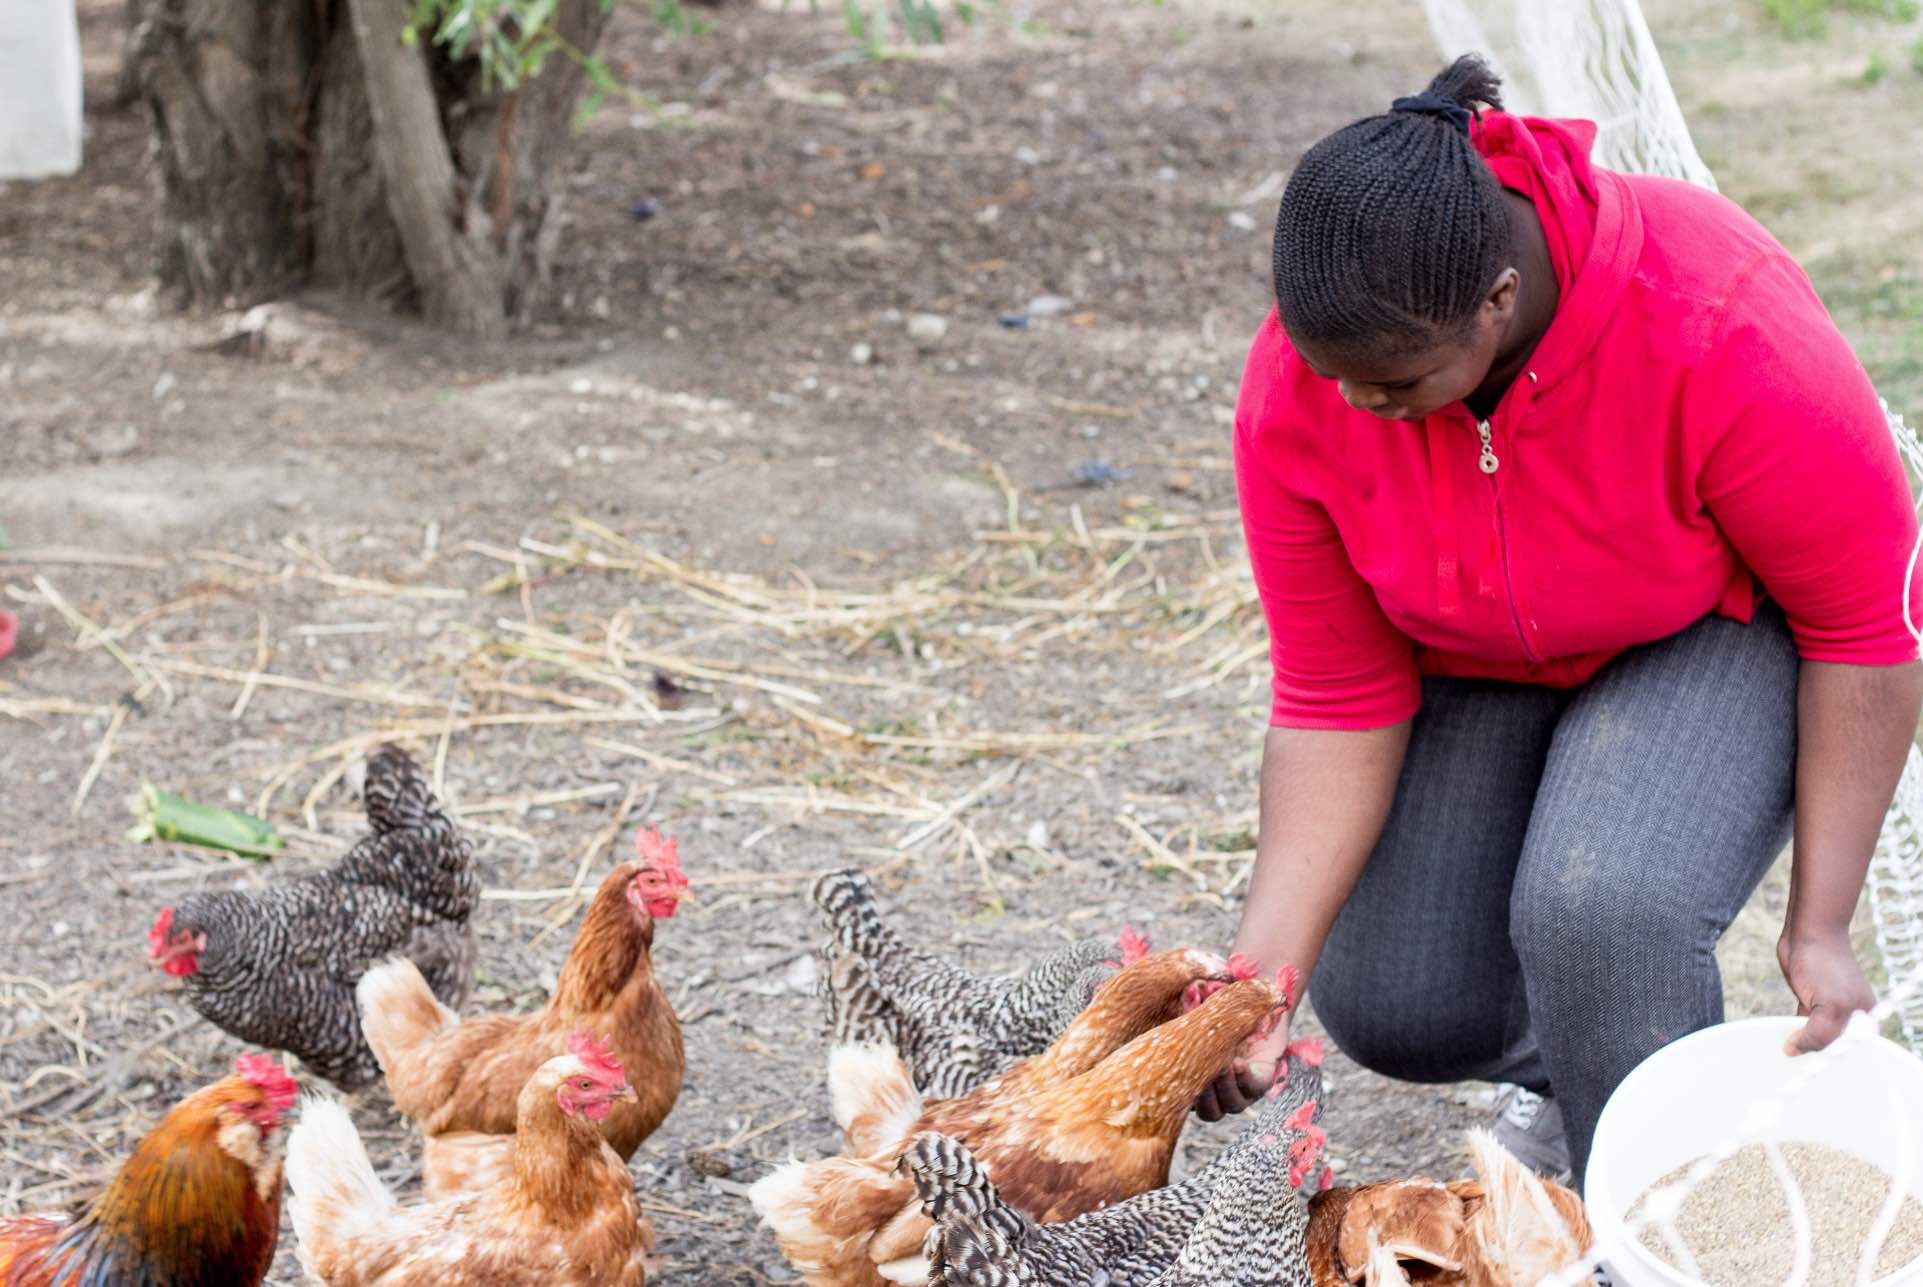 Farm staff feeding chickens